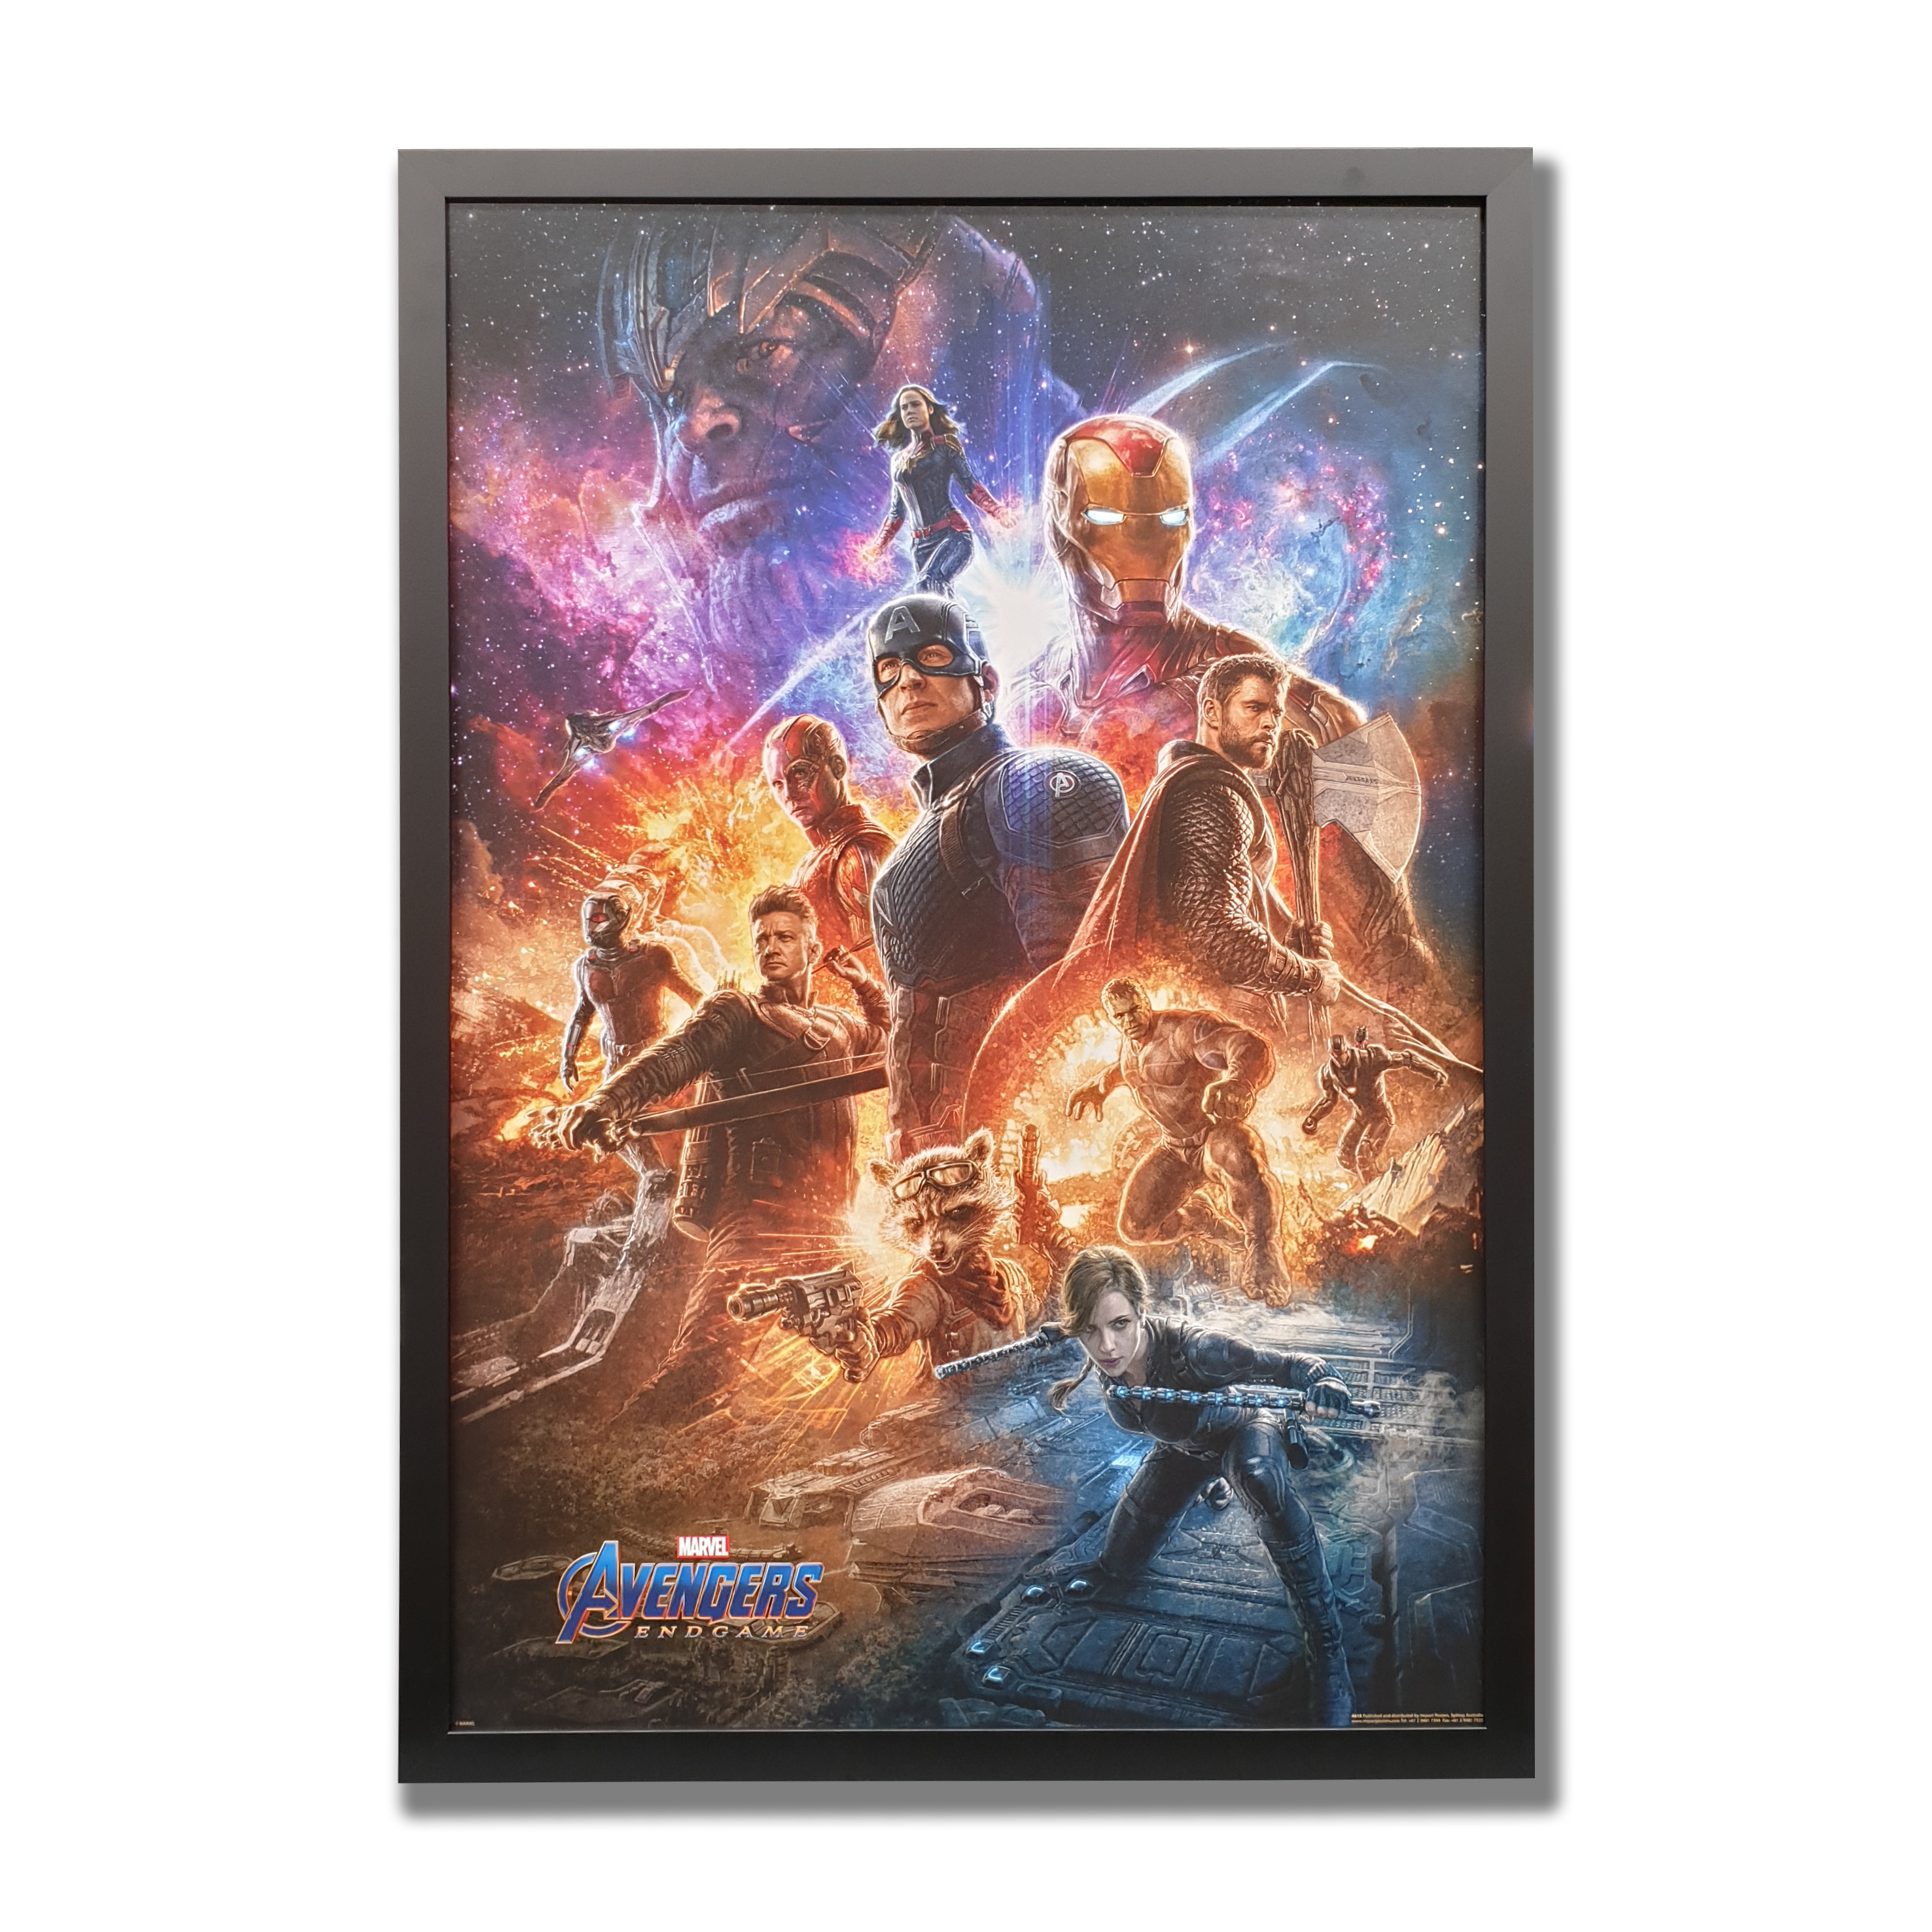 A colourful poster of the Avengers characters surrounded by a black frame